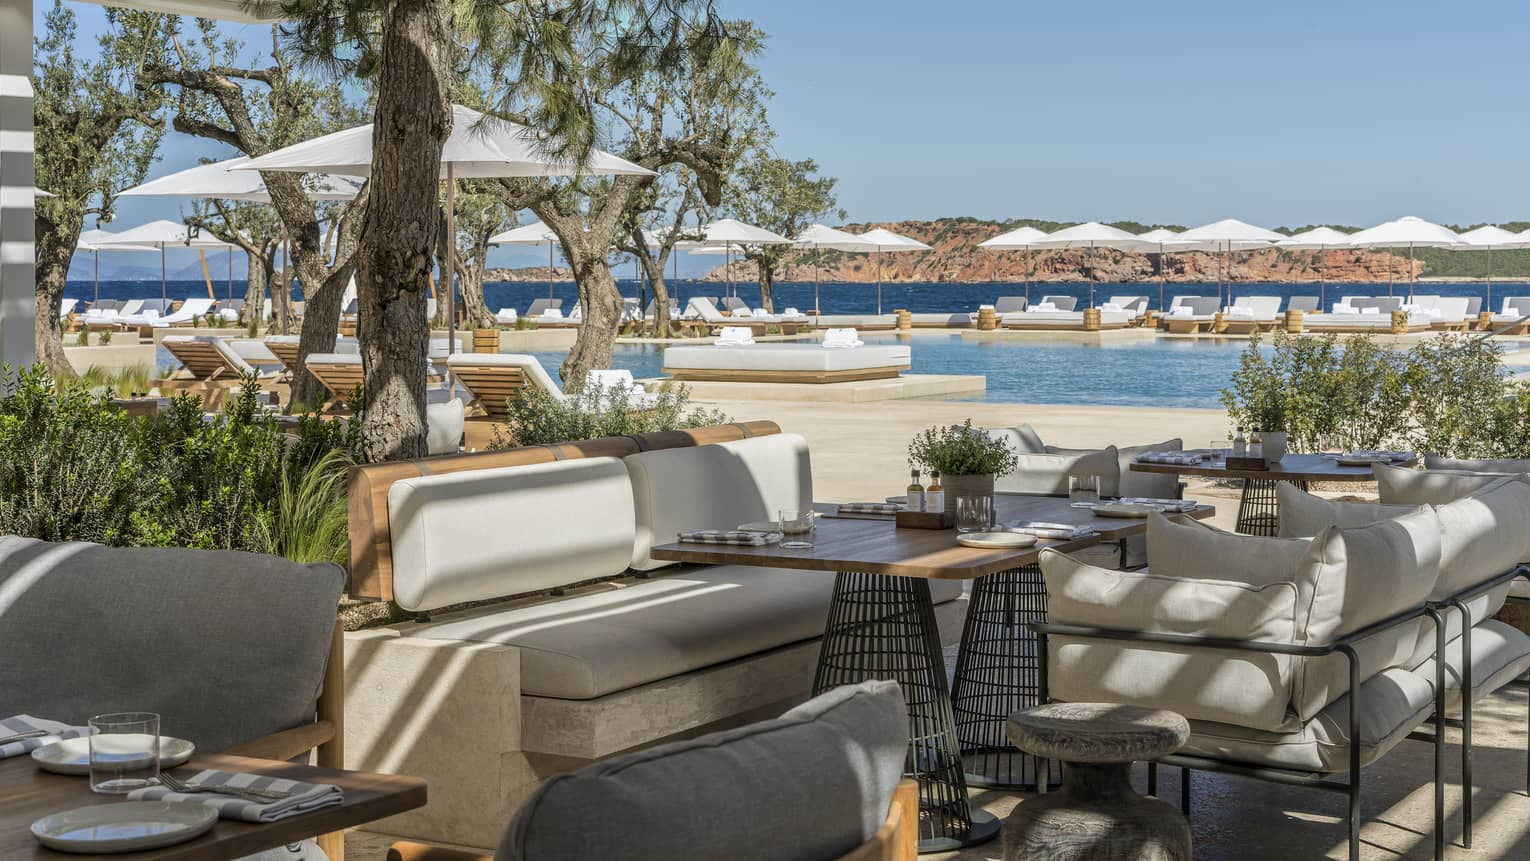 Helios outdoor restaurant with beige benches, modern tables, greenery, surrounding pool and ocean